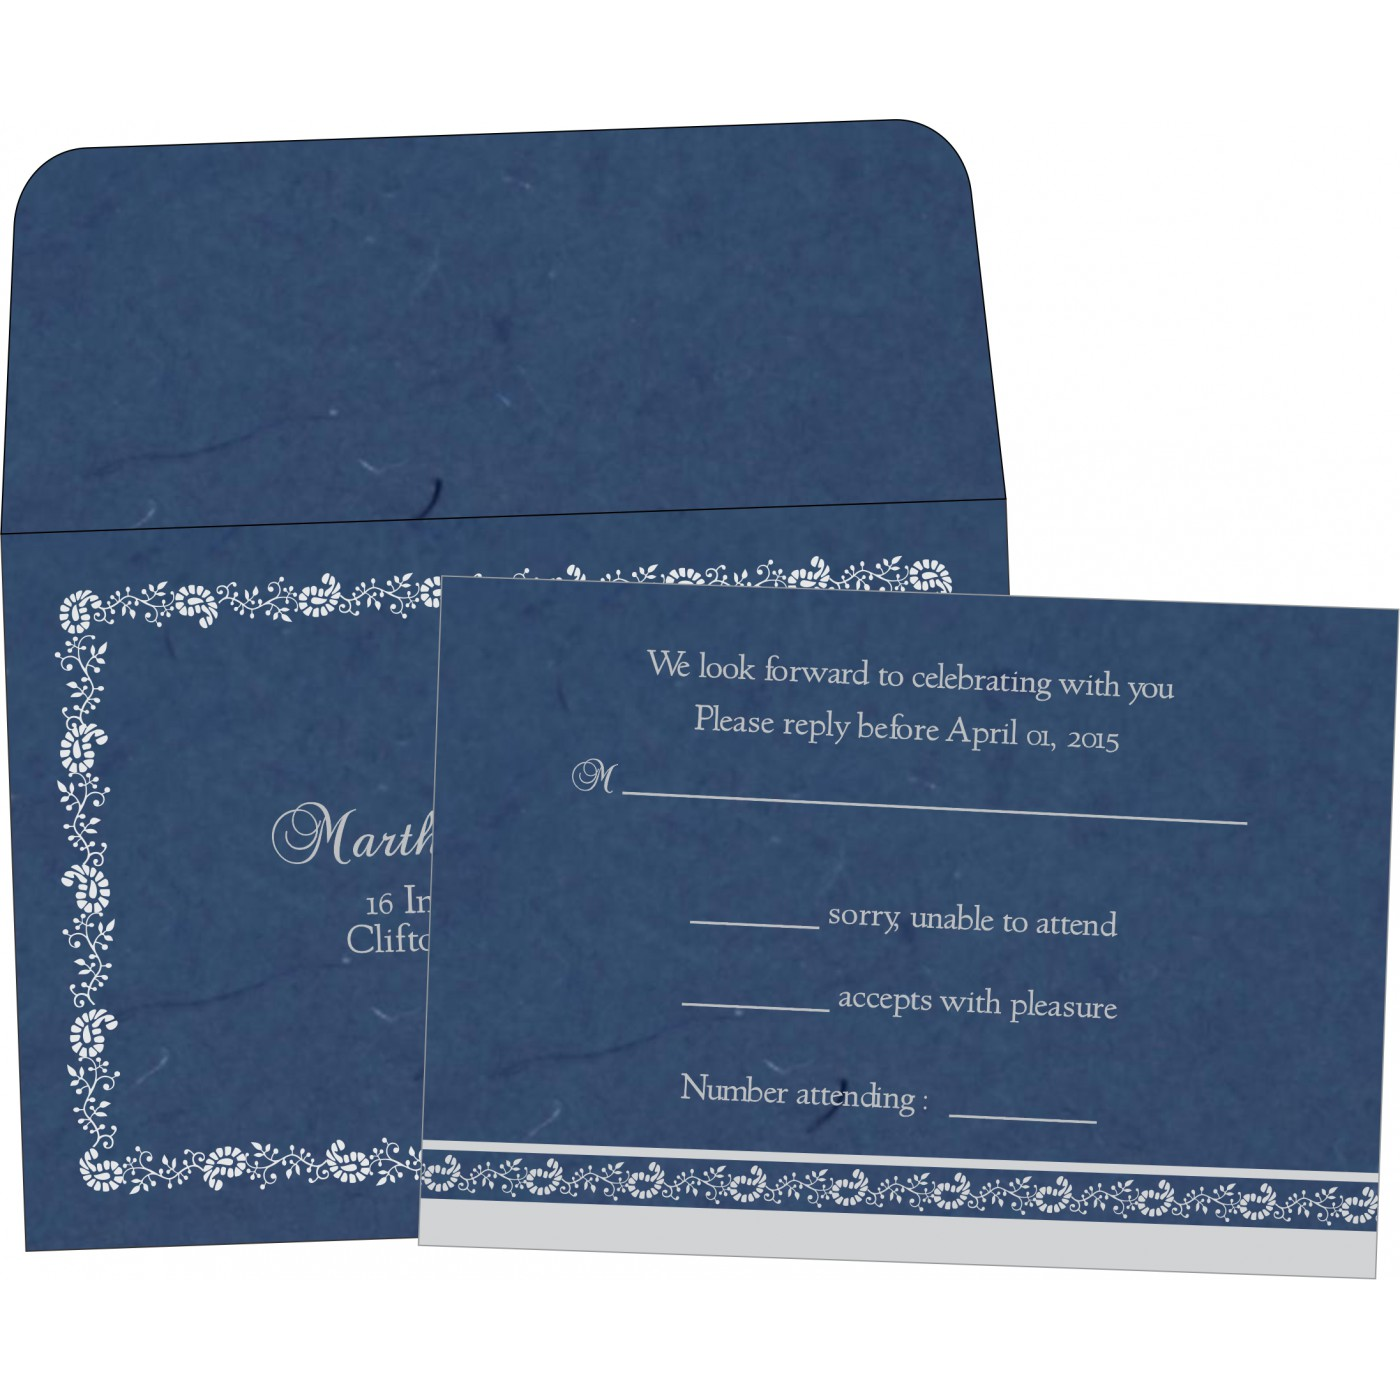 RSVP Cards - A2zWeddingCards